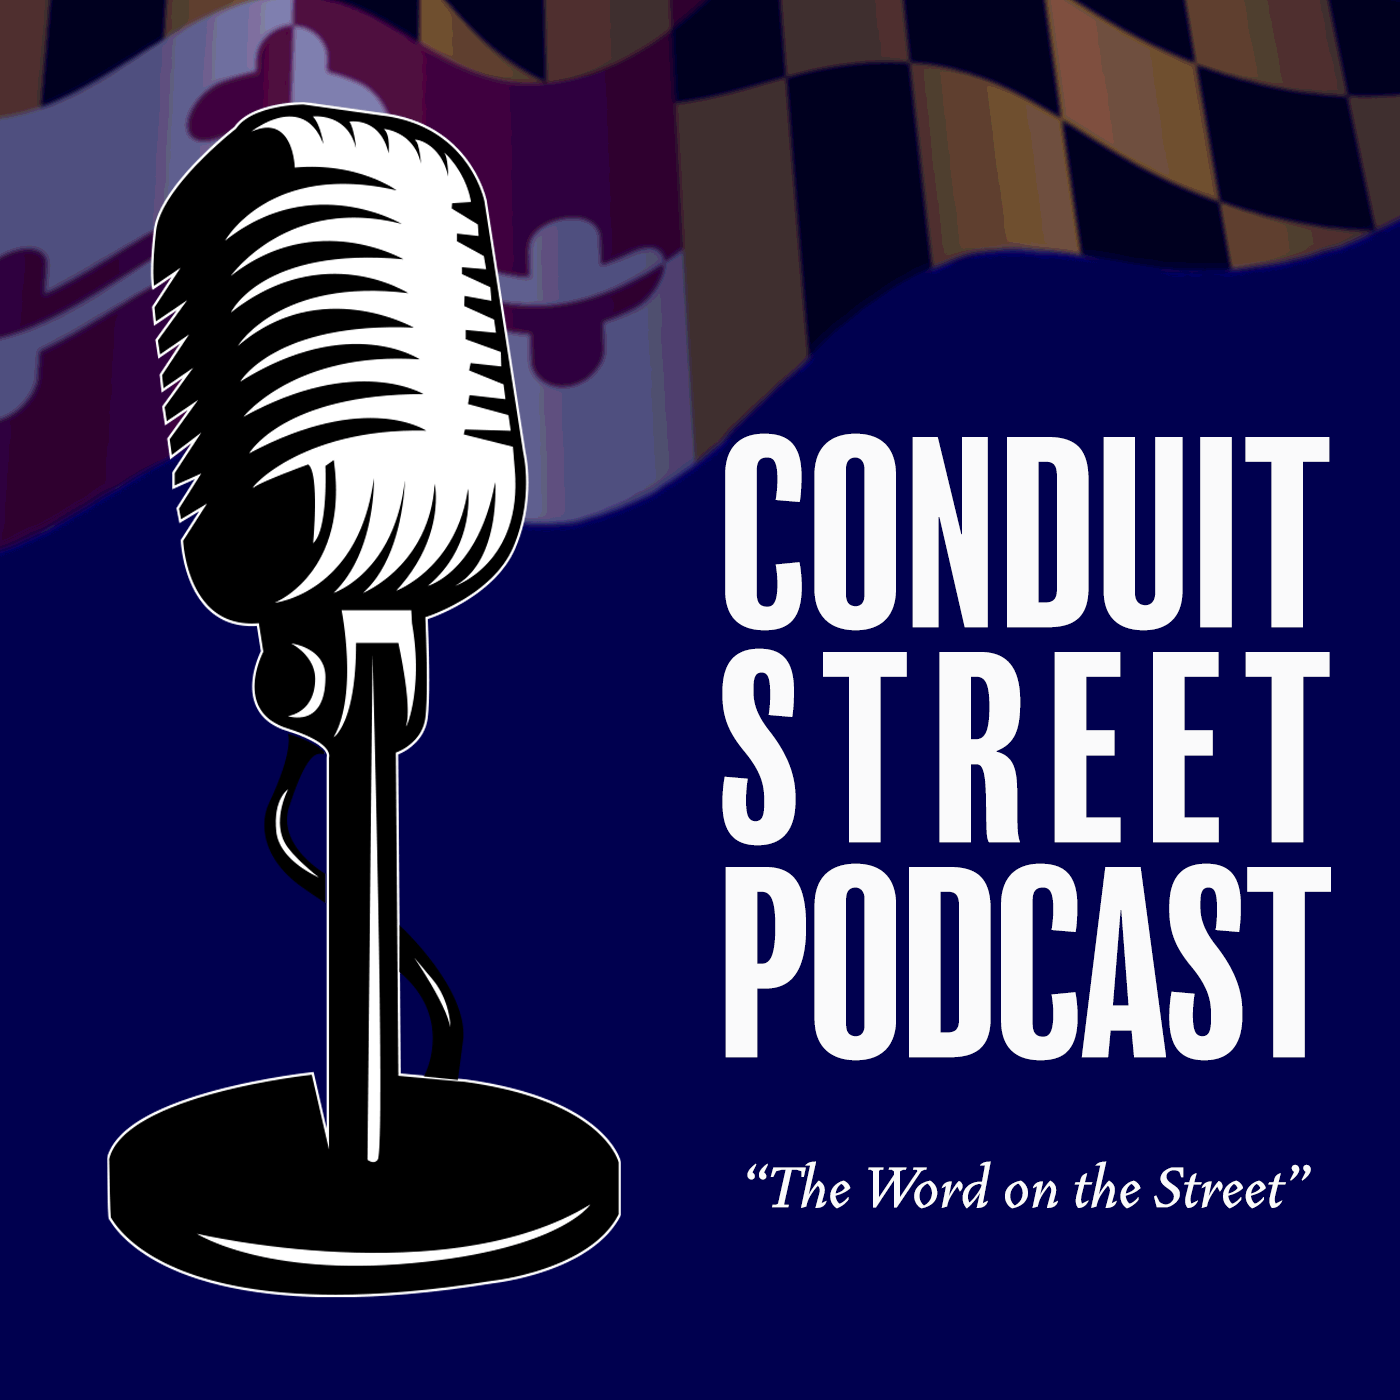 Conduit Street Podcast: Kicking Off the Strangest Session